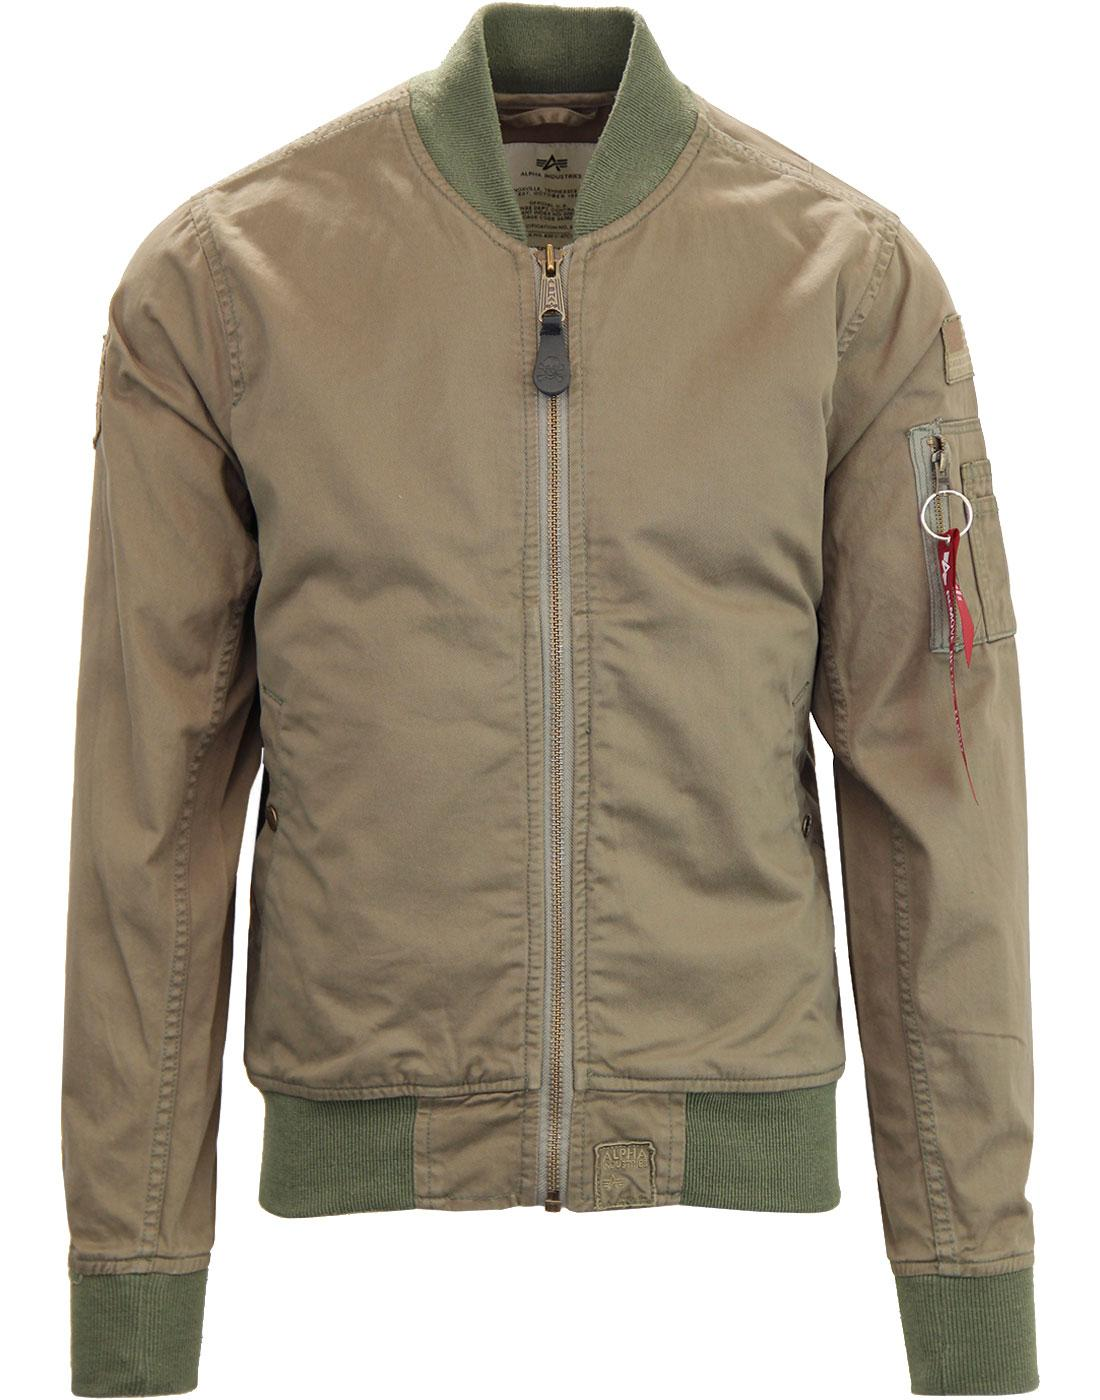 Ground Crew II ALPHA INDUSTRIES Military Bomber